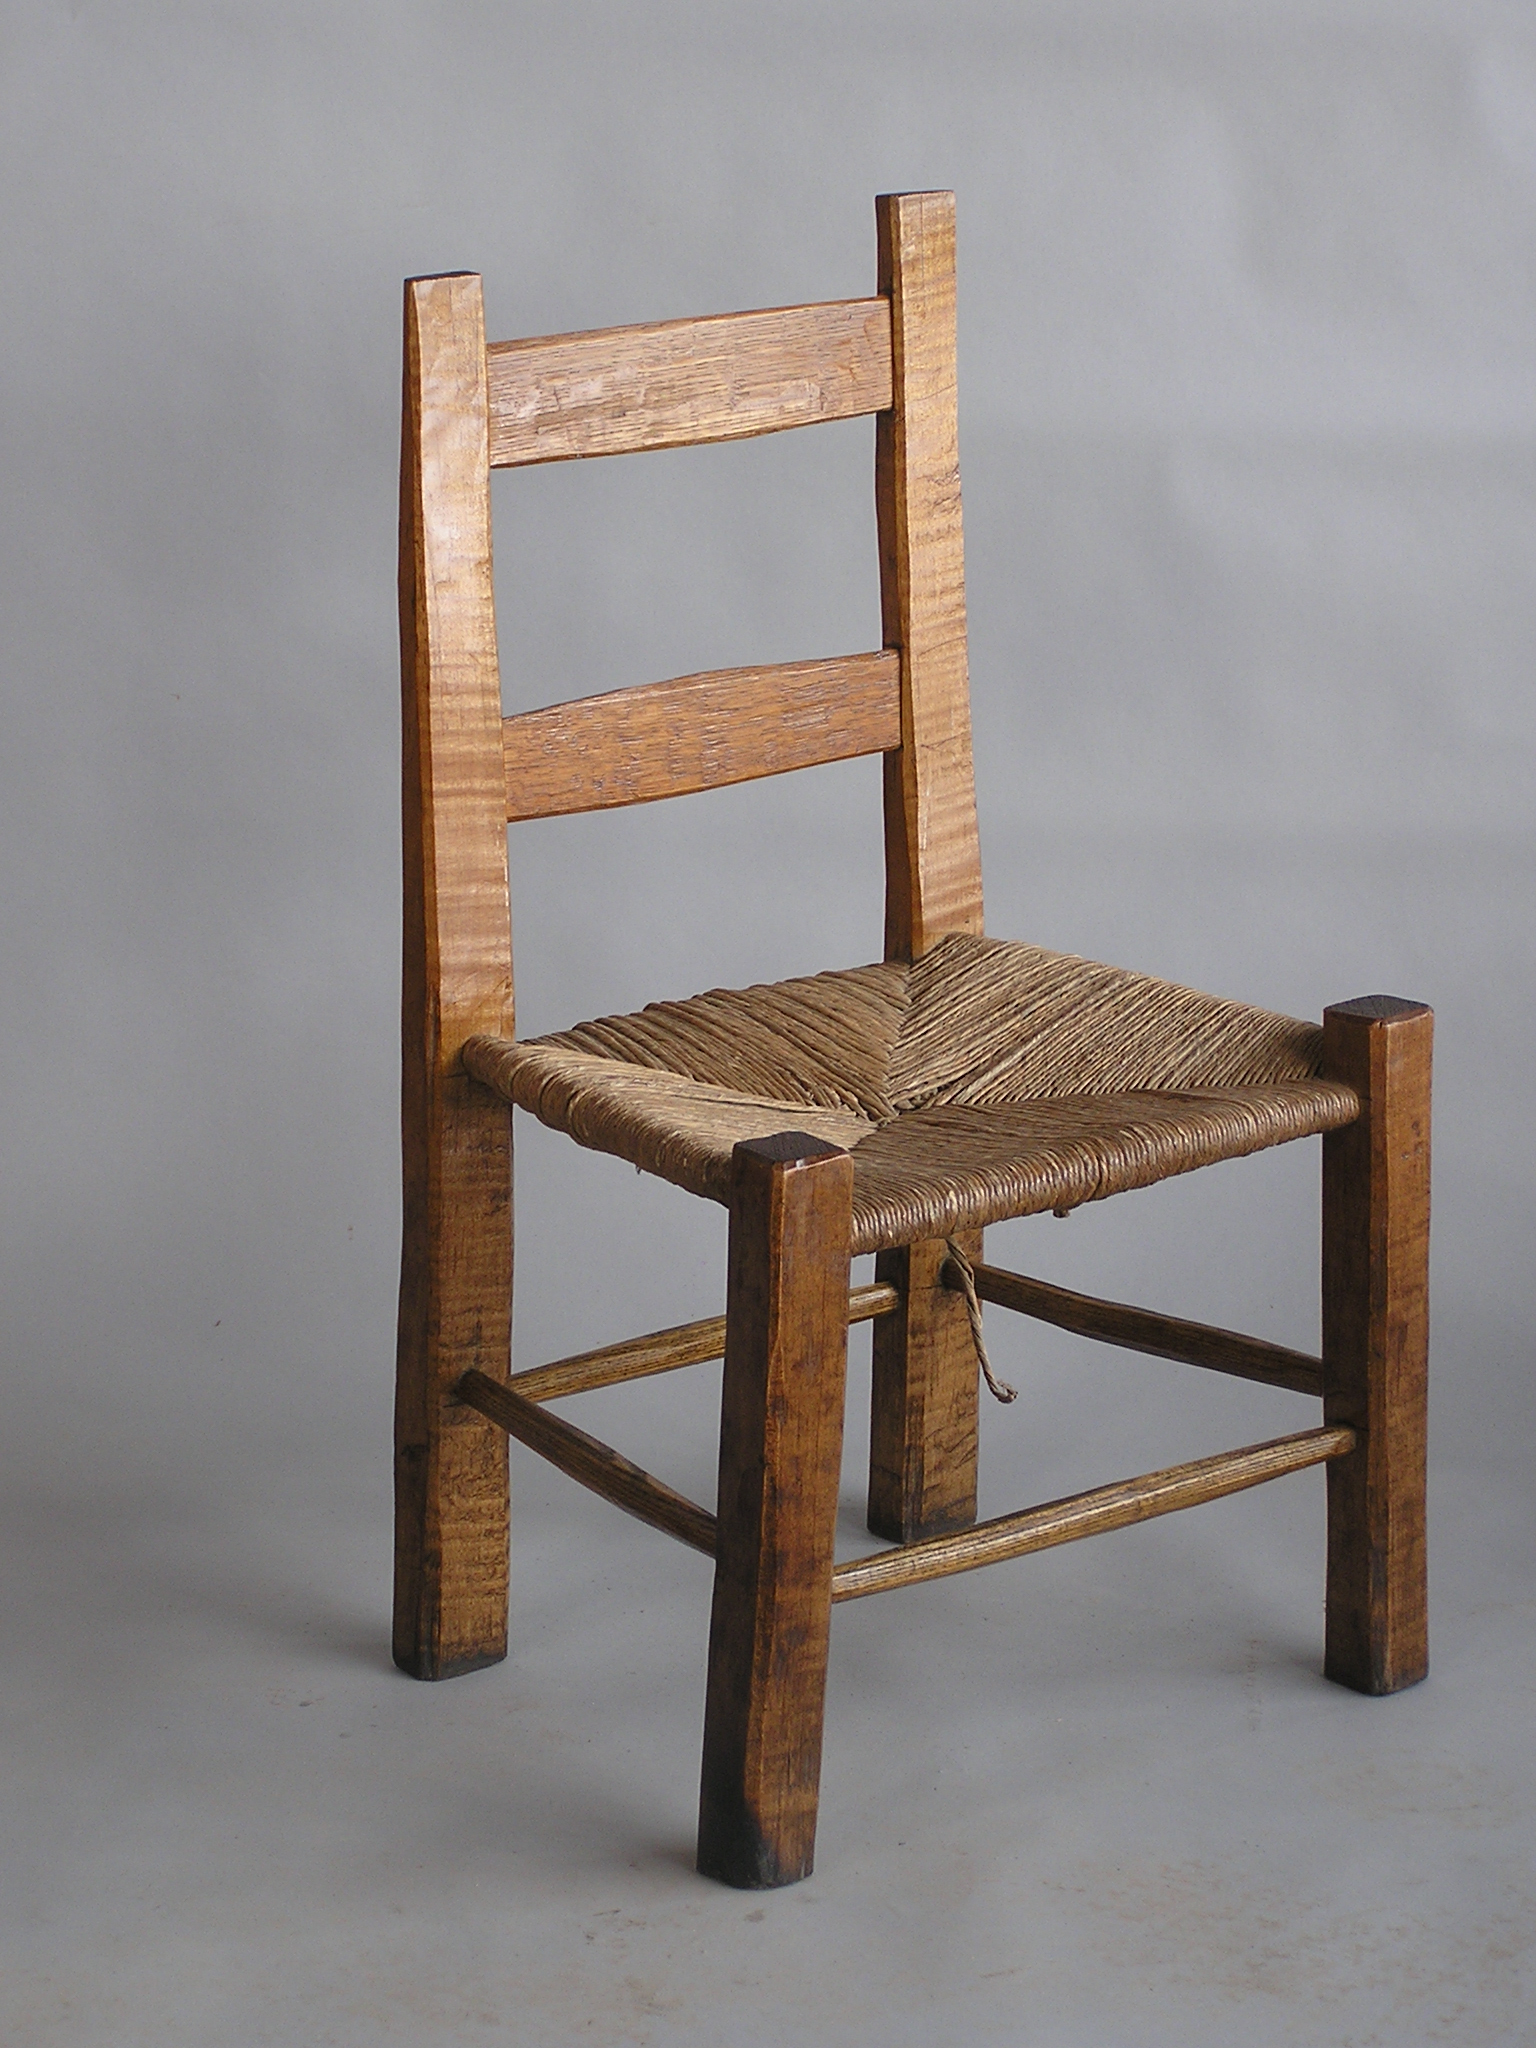 Green wood peter follansbee joiner 39 s notes What are chairs made of